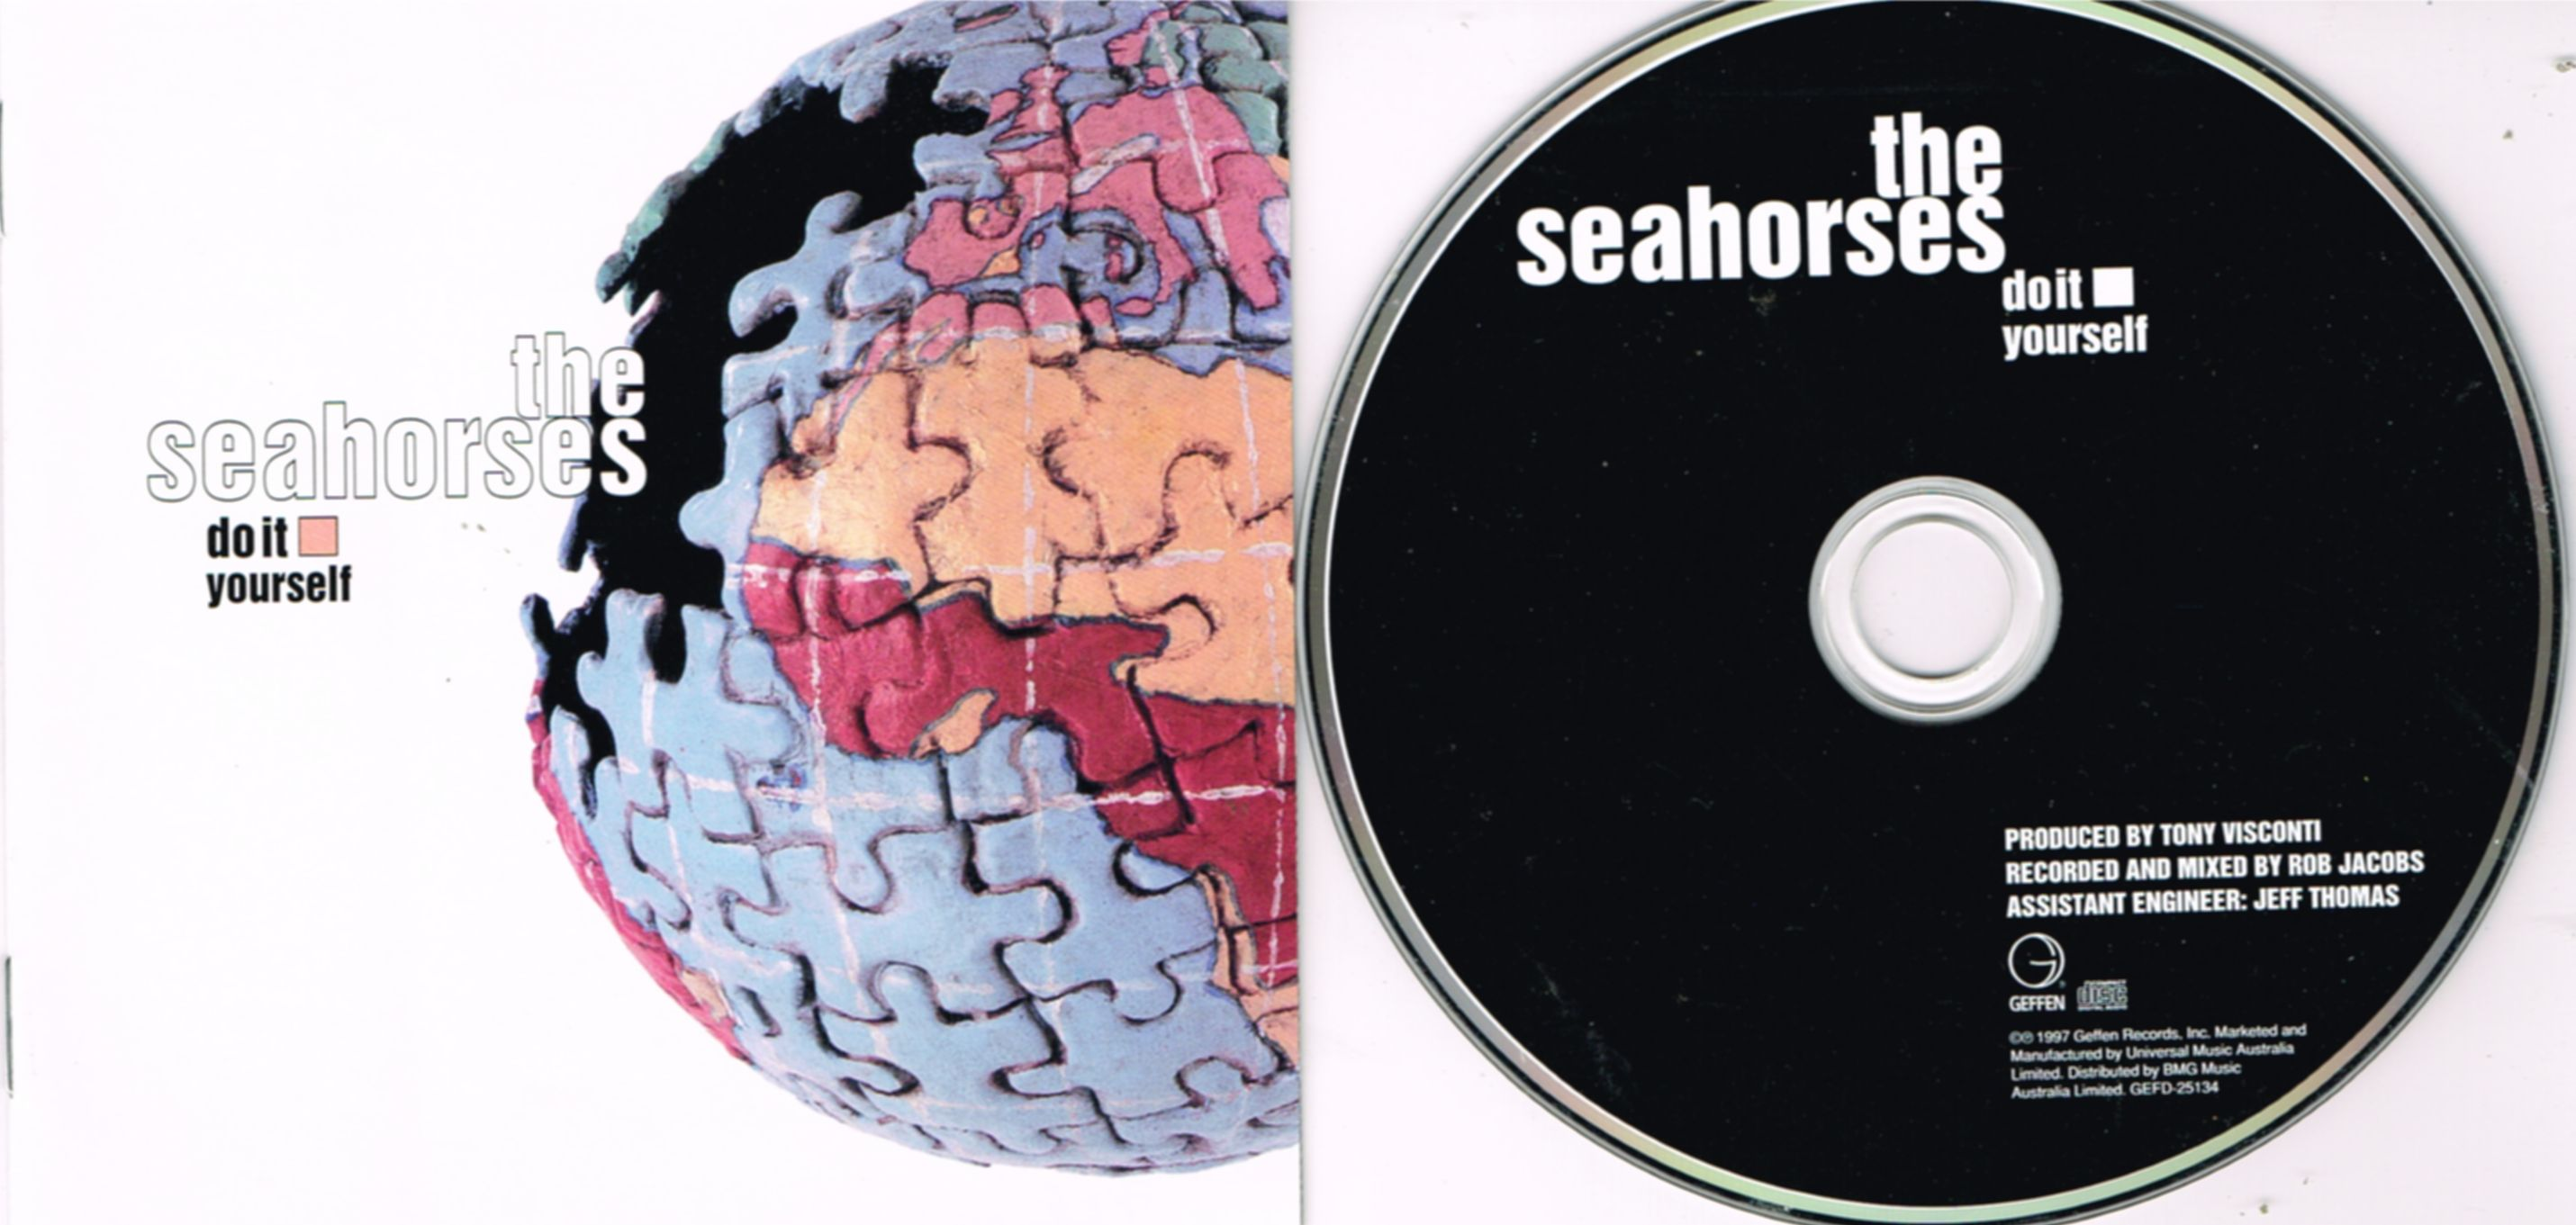 Seahorses do it yourself records lps vinyl and cds musicstack seahorses do it yourself cd solutioingenieria Image collections